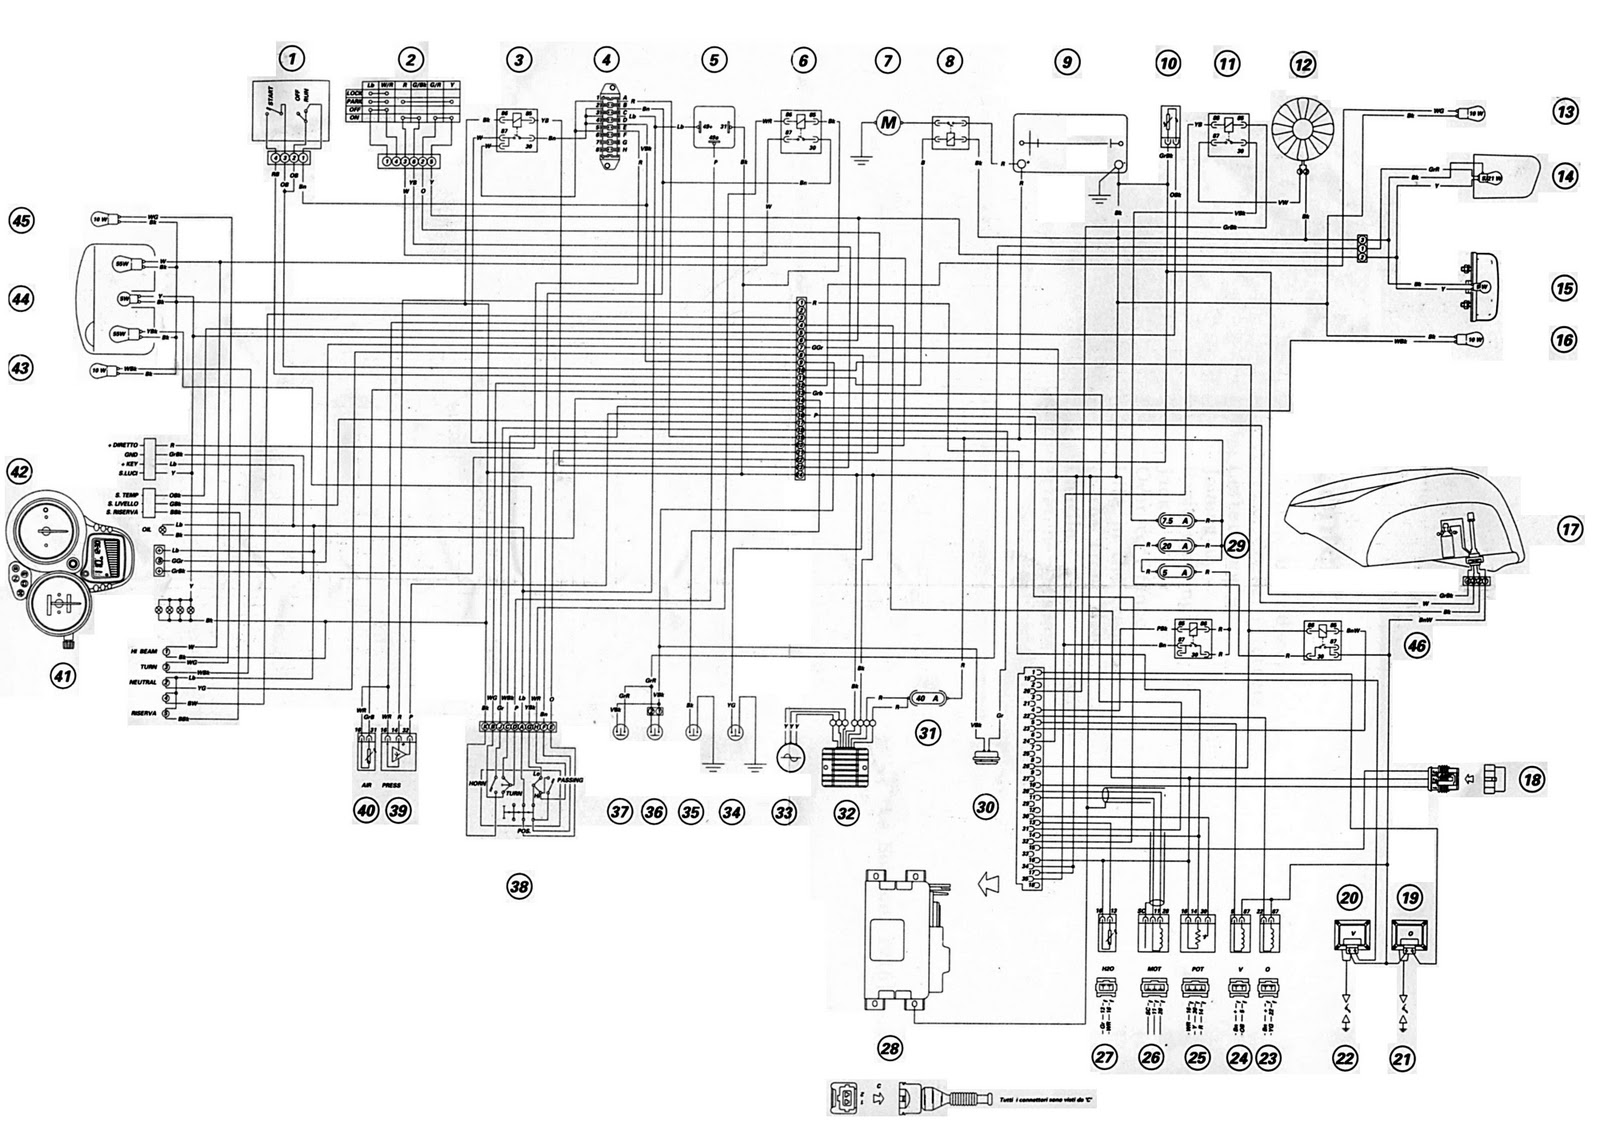 1971 Chevelle Wiring Diagram 1971 Automotive Wiring Diagrams – 1969 Chevelle Wiring Diagram